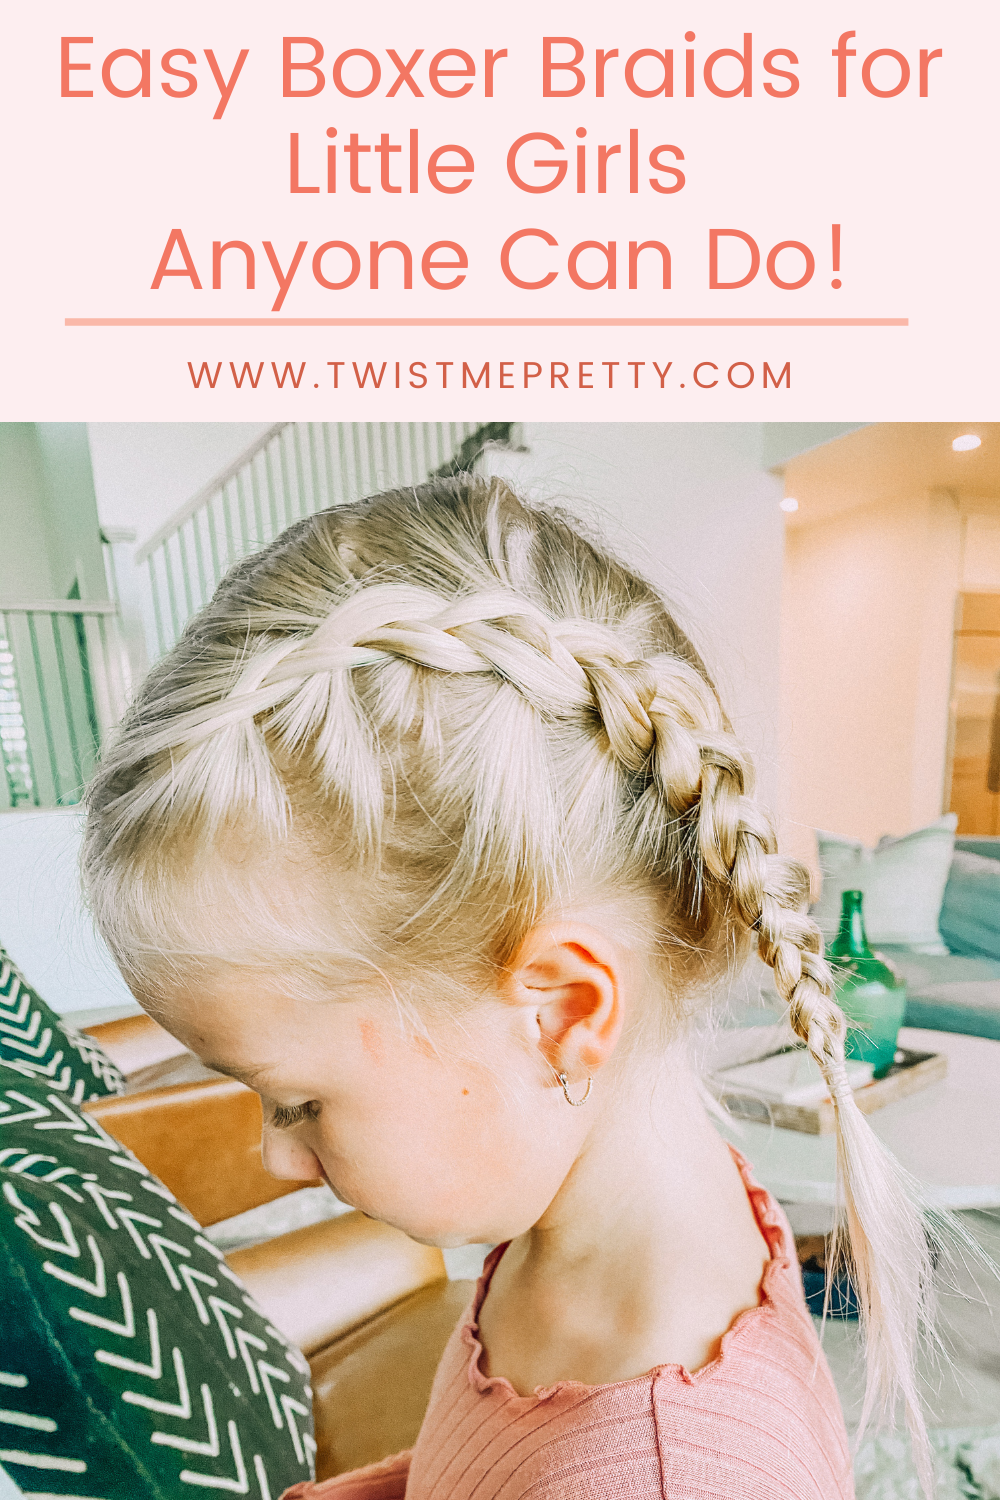 Easy Boxer Braids for Little Girls Anyone Can do! www.twistmepretty.com